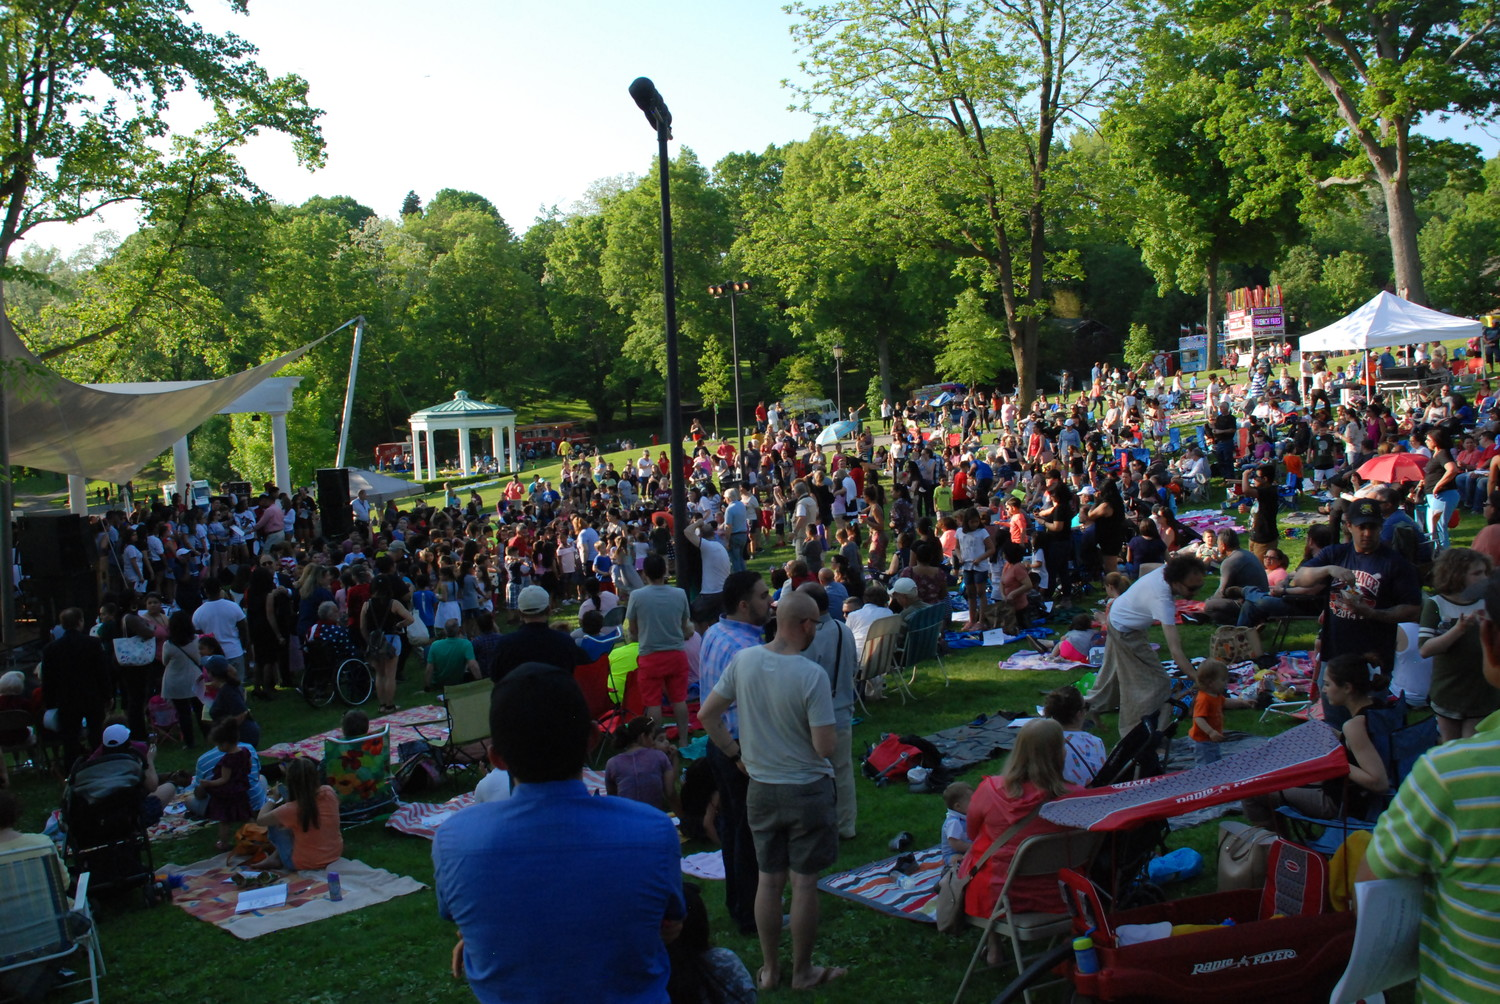 The 350th anniversary picnic and fireworks celebration drew large crowds to Morgan Memorial Park.